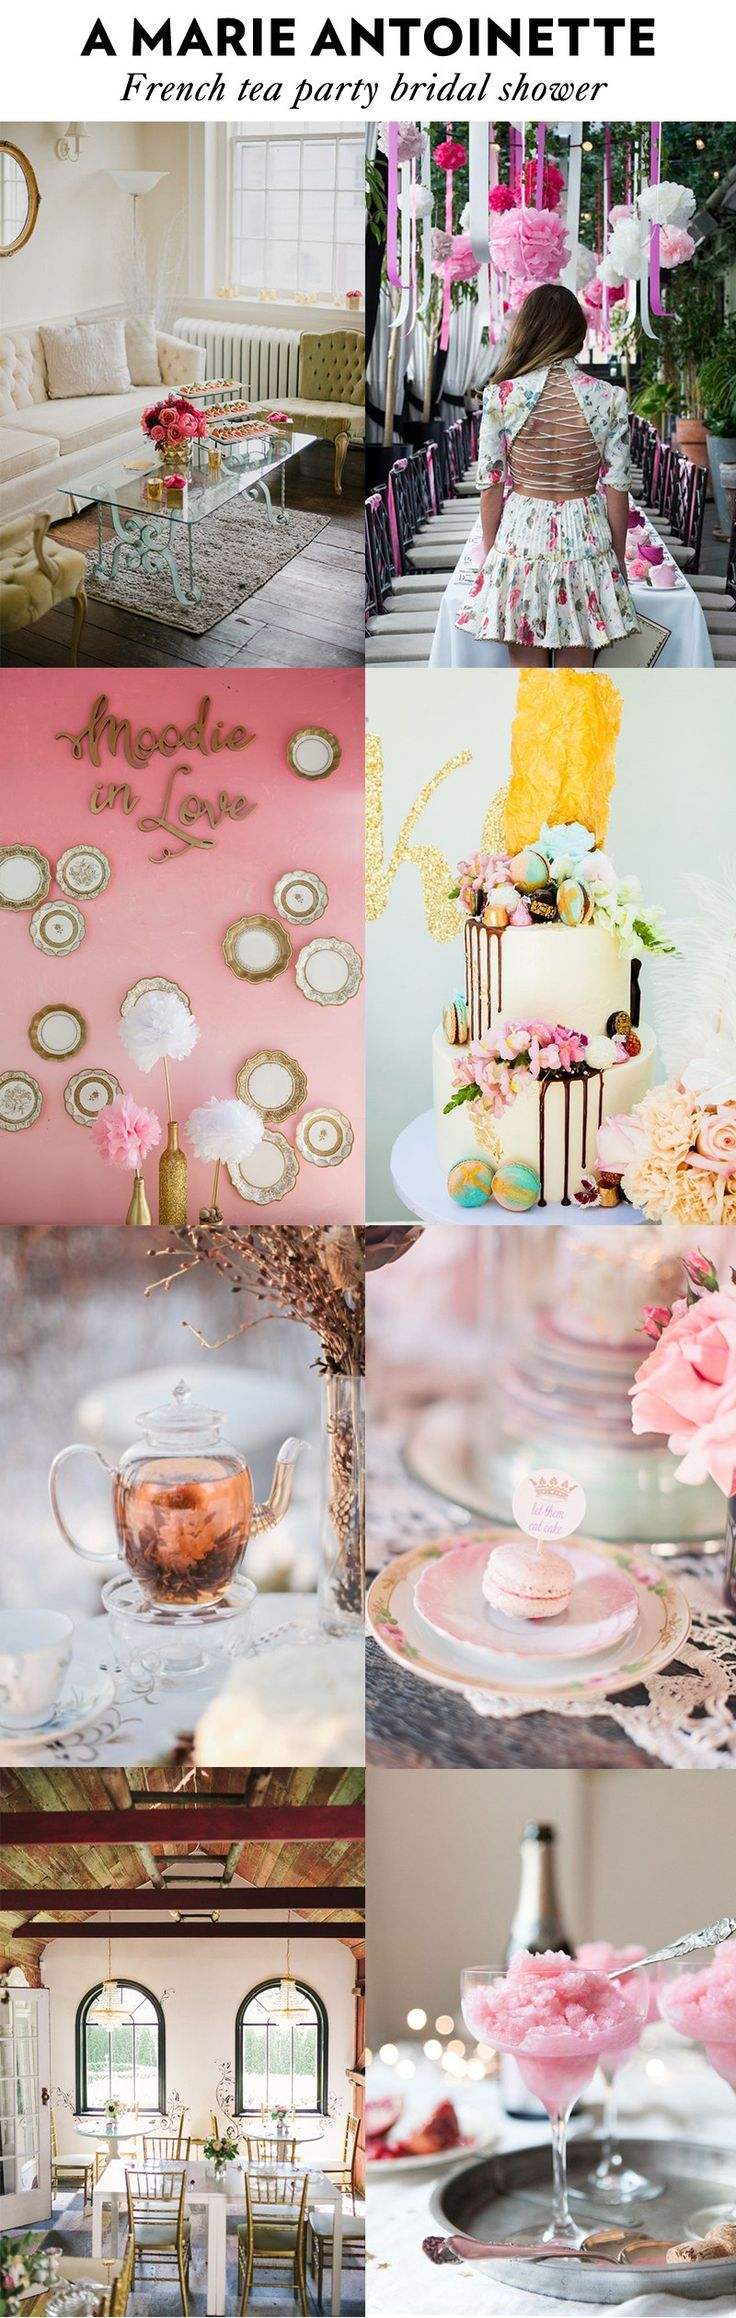 A Marie Antoinette French tea party bridal shower